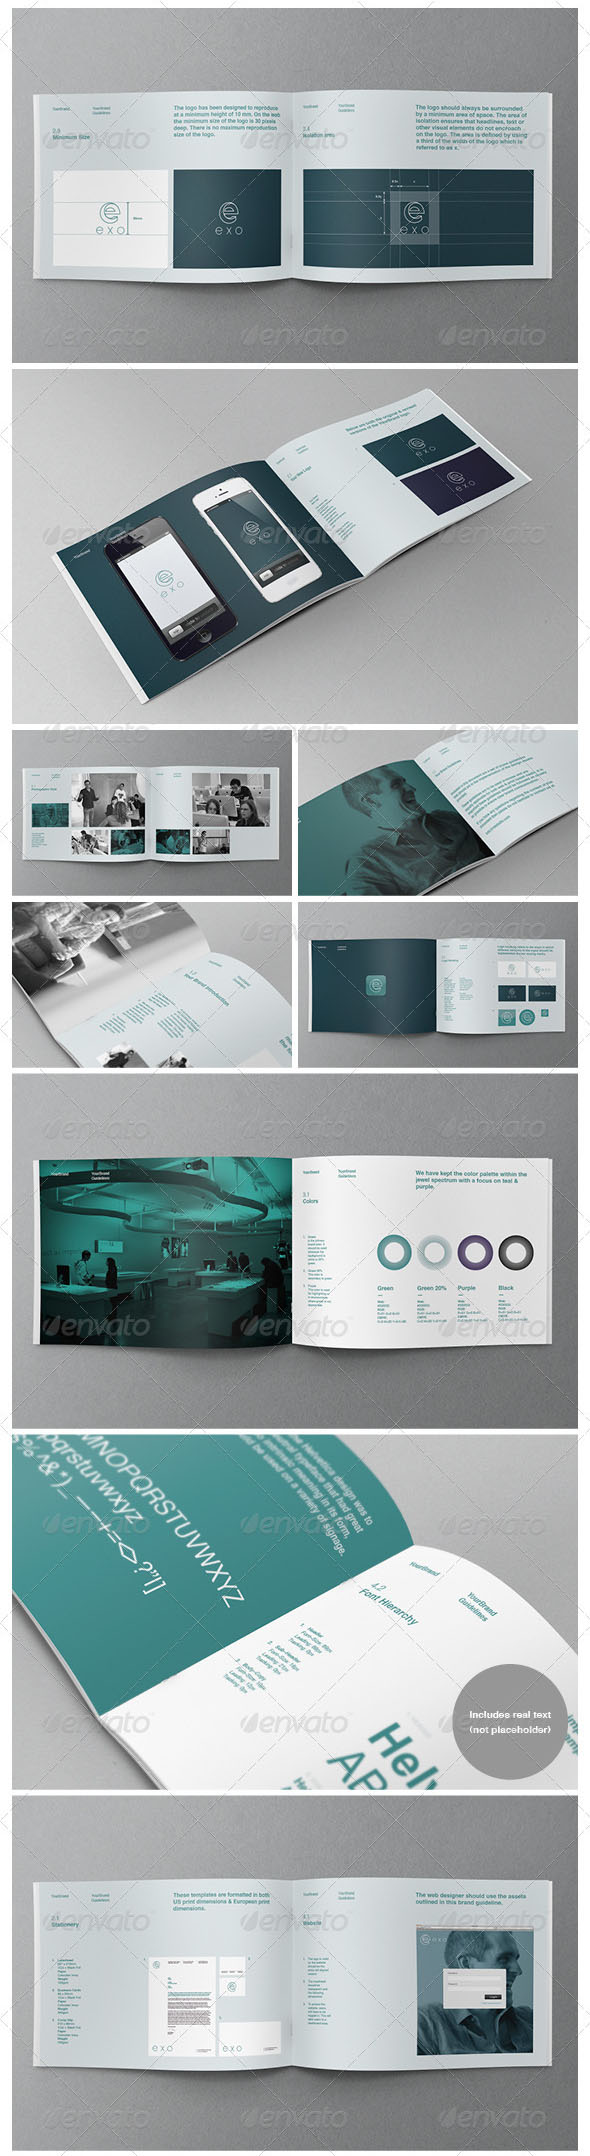 instruction manual template indesign